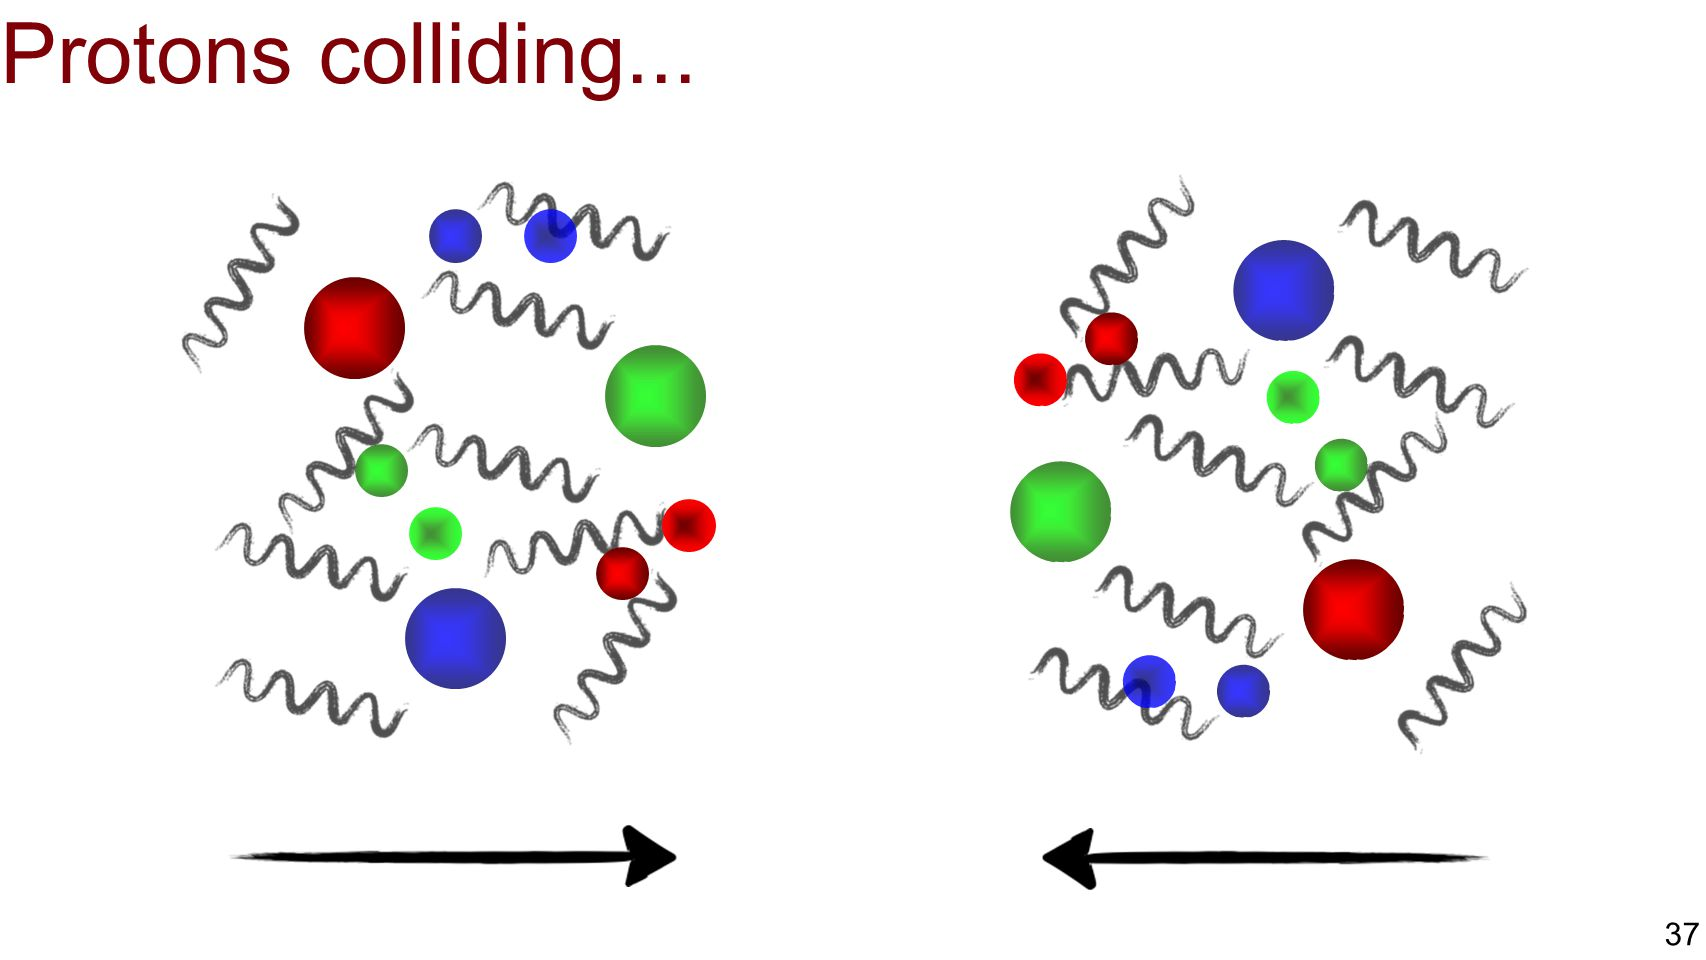 Protons colliding...